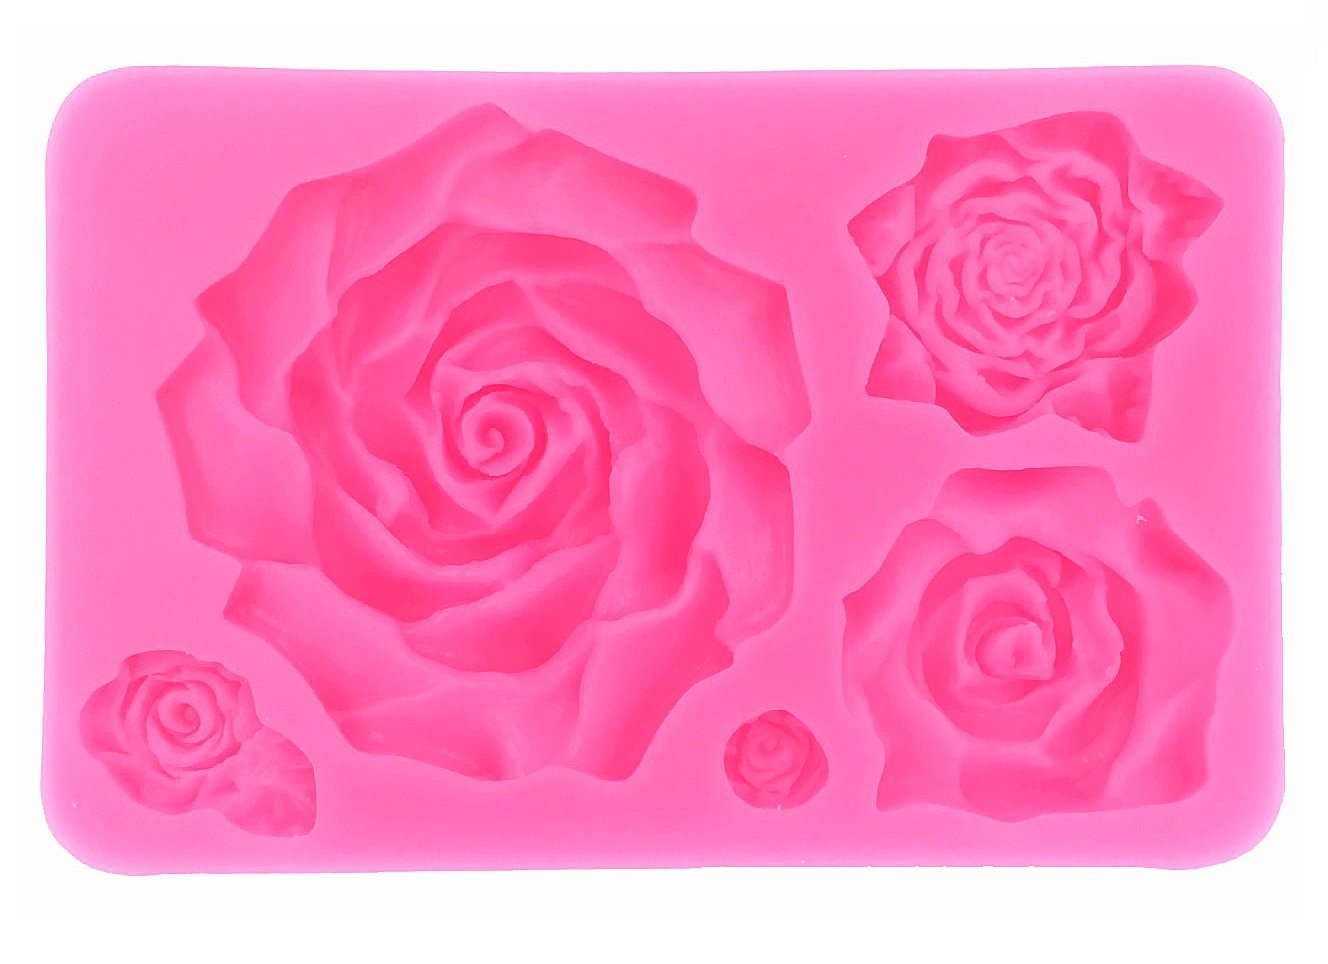 Large 5 Assorted Sizes Roses Resin Fondant Candy Silicone Mold for Sugarcraft, Cake Decoration, Cupcake Topper, Chocolate, Butter, Jewelry, Polymer Clay, Soap Making Mity rain